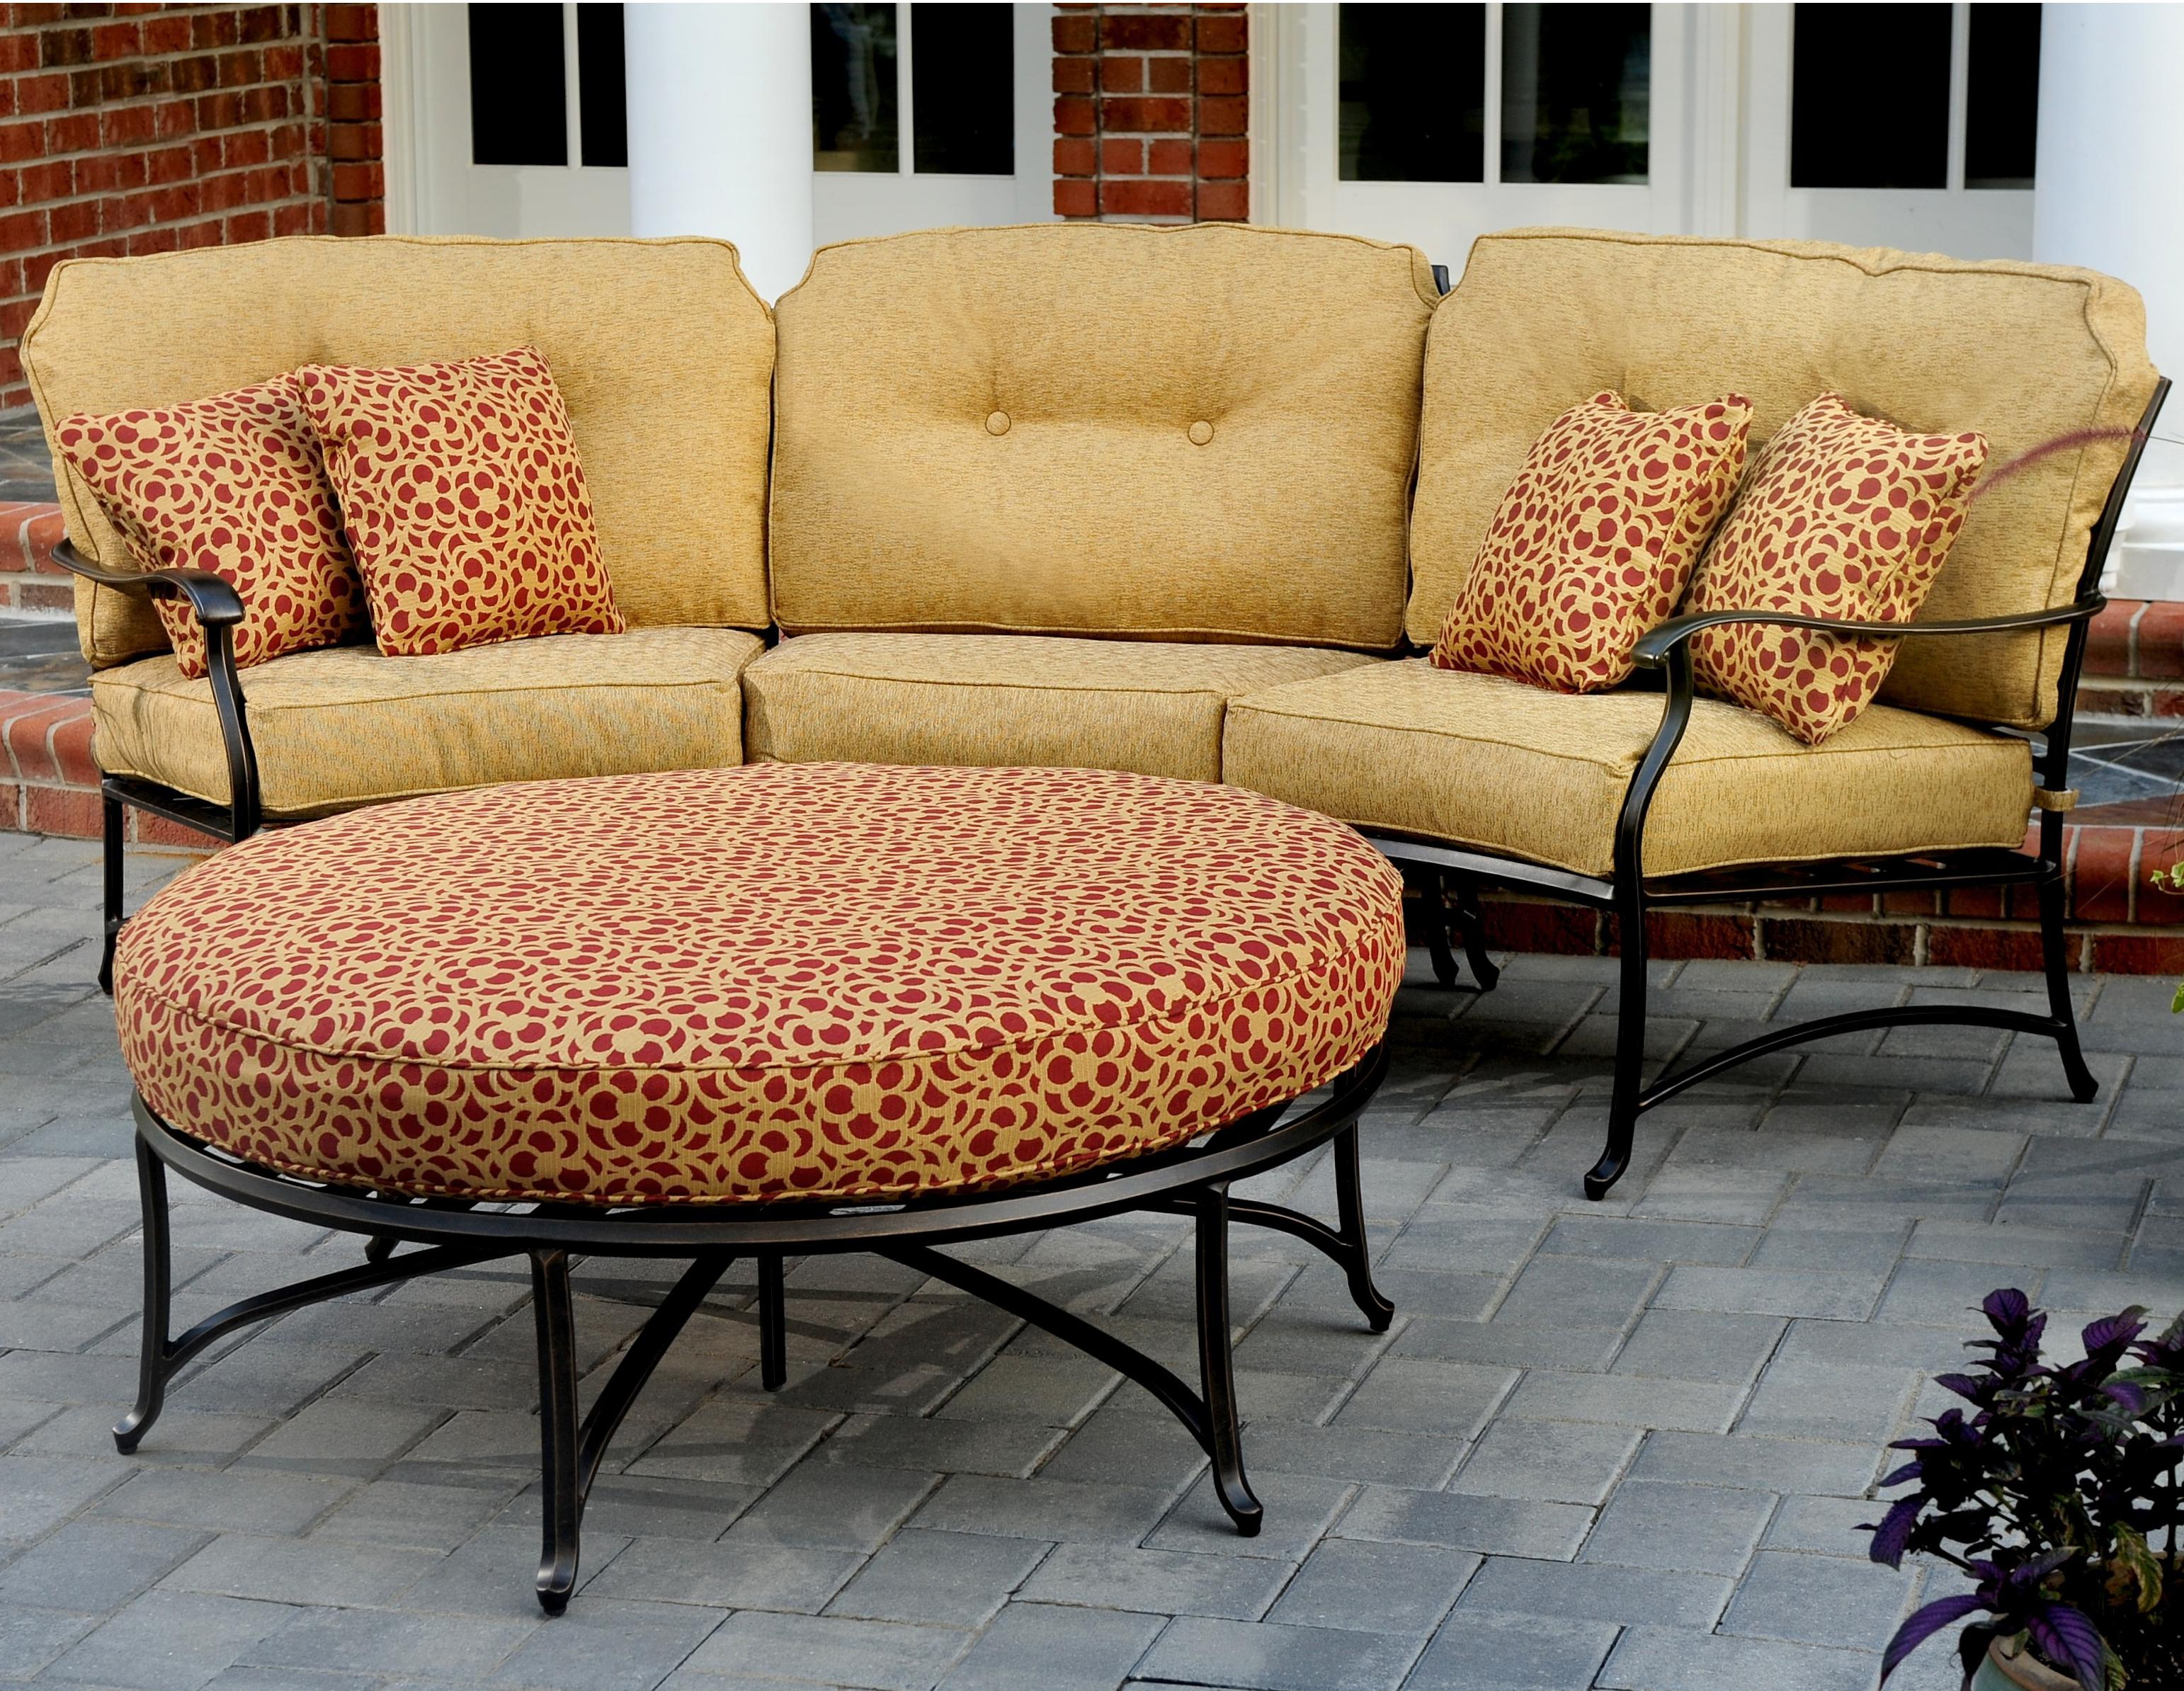 Agio Heritage Outdoor Semi Round Sectional Sofa AHFA Outdoor